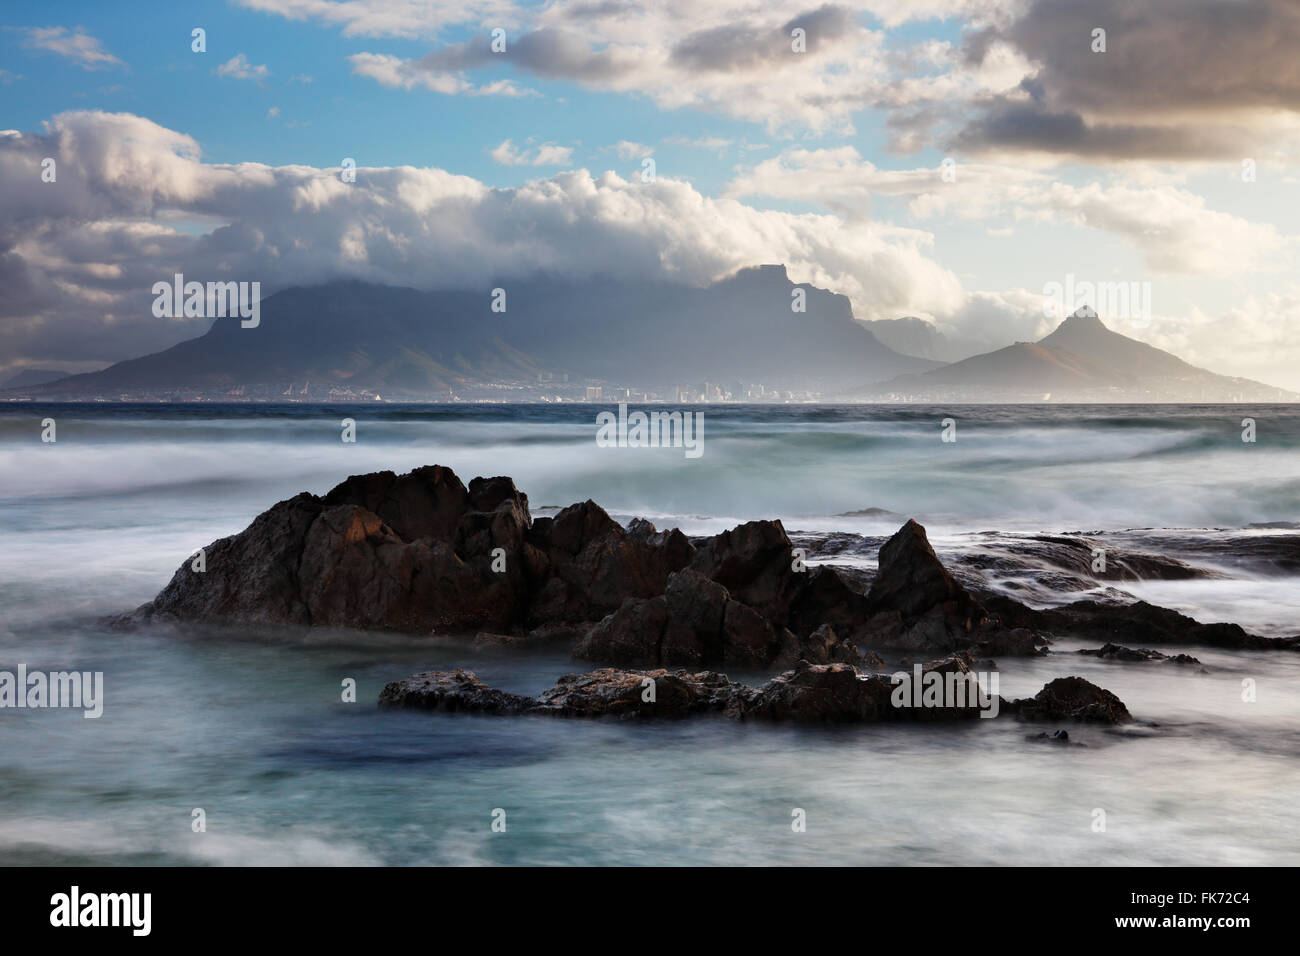 Table Mountain & Cape Town from Bloubergstrand, western Cape, South Africa - Stock Image